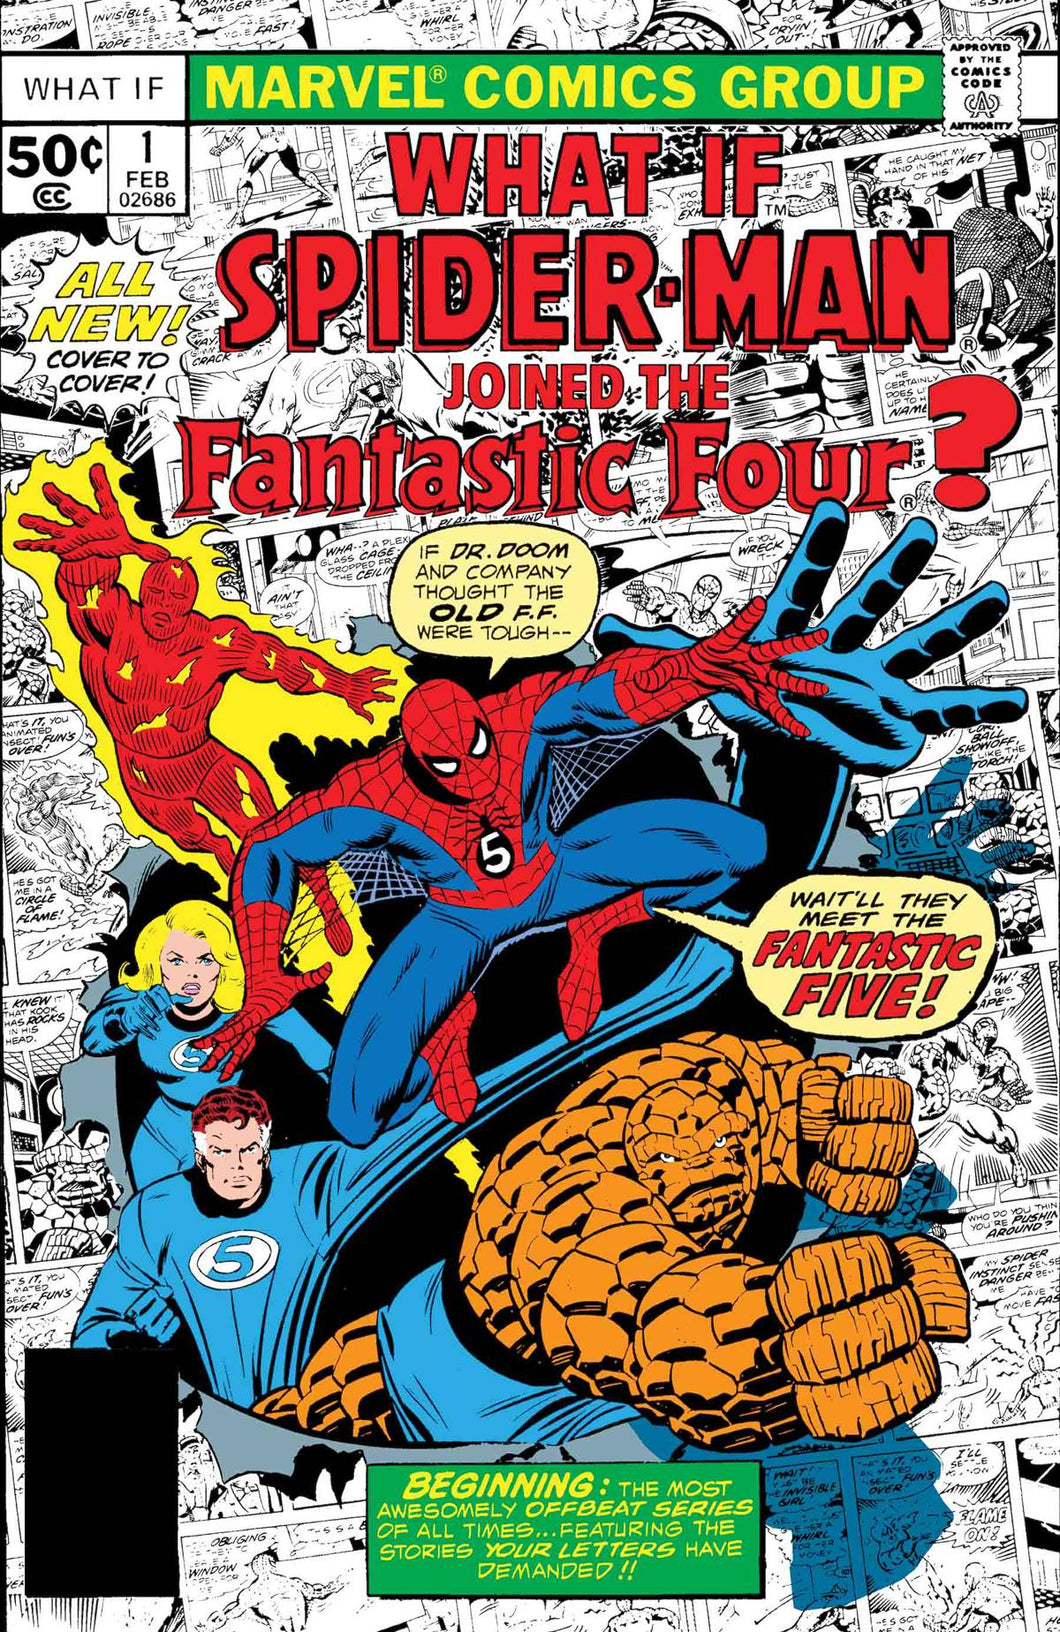 TRUE BELIEVERS FANTASTIC FOUR WHAT IF? #1 FOC 07/02 (ADVANCE ORDER)